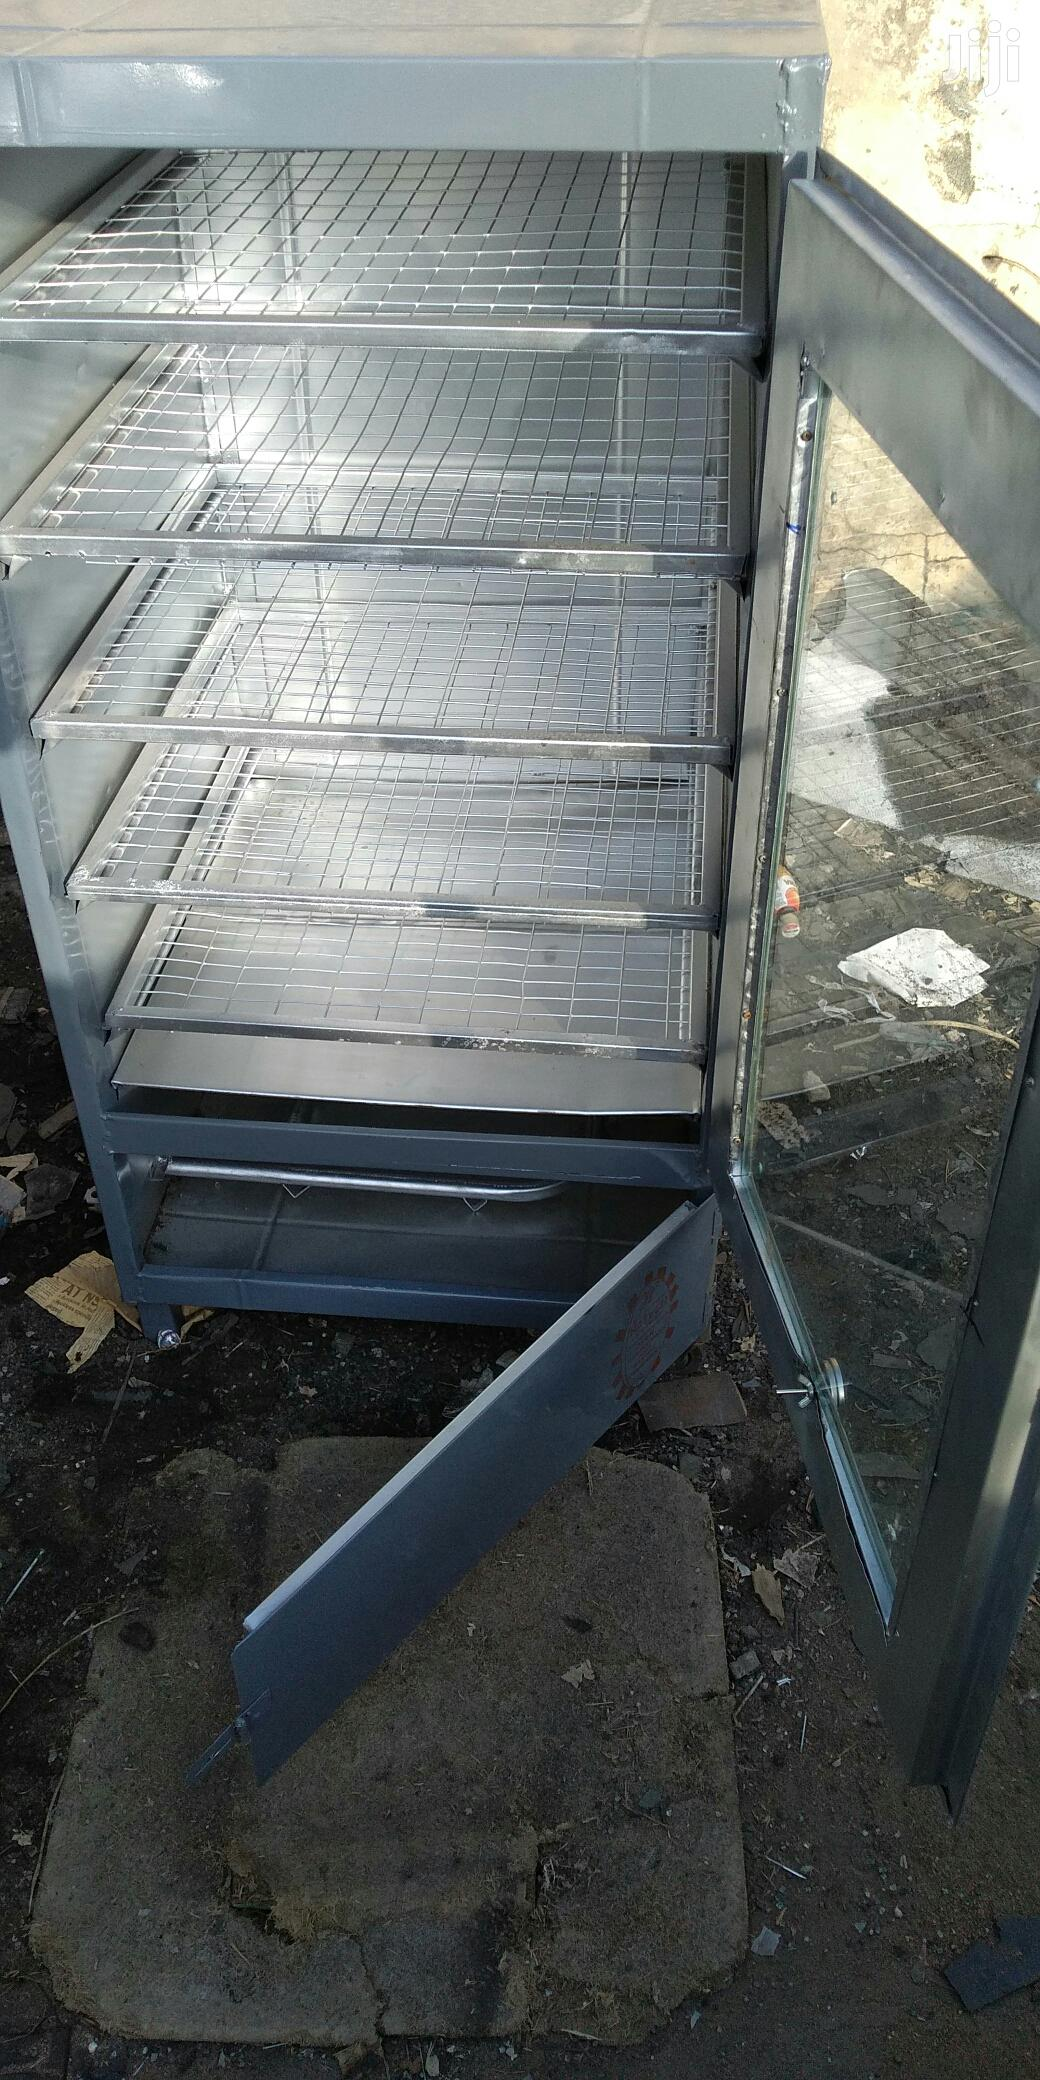 Easy Tech Enterprises Oven   Industrial Ovens for sale in Ilorin West, Kwara State, Nigeria